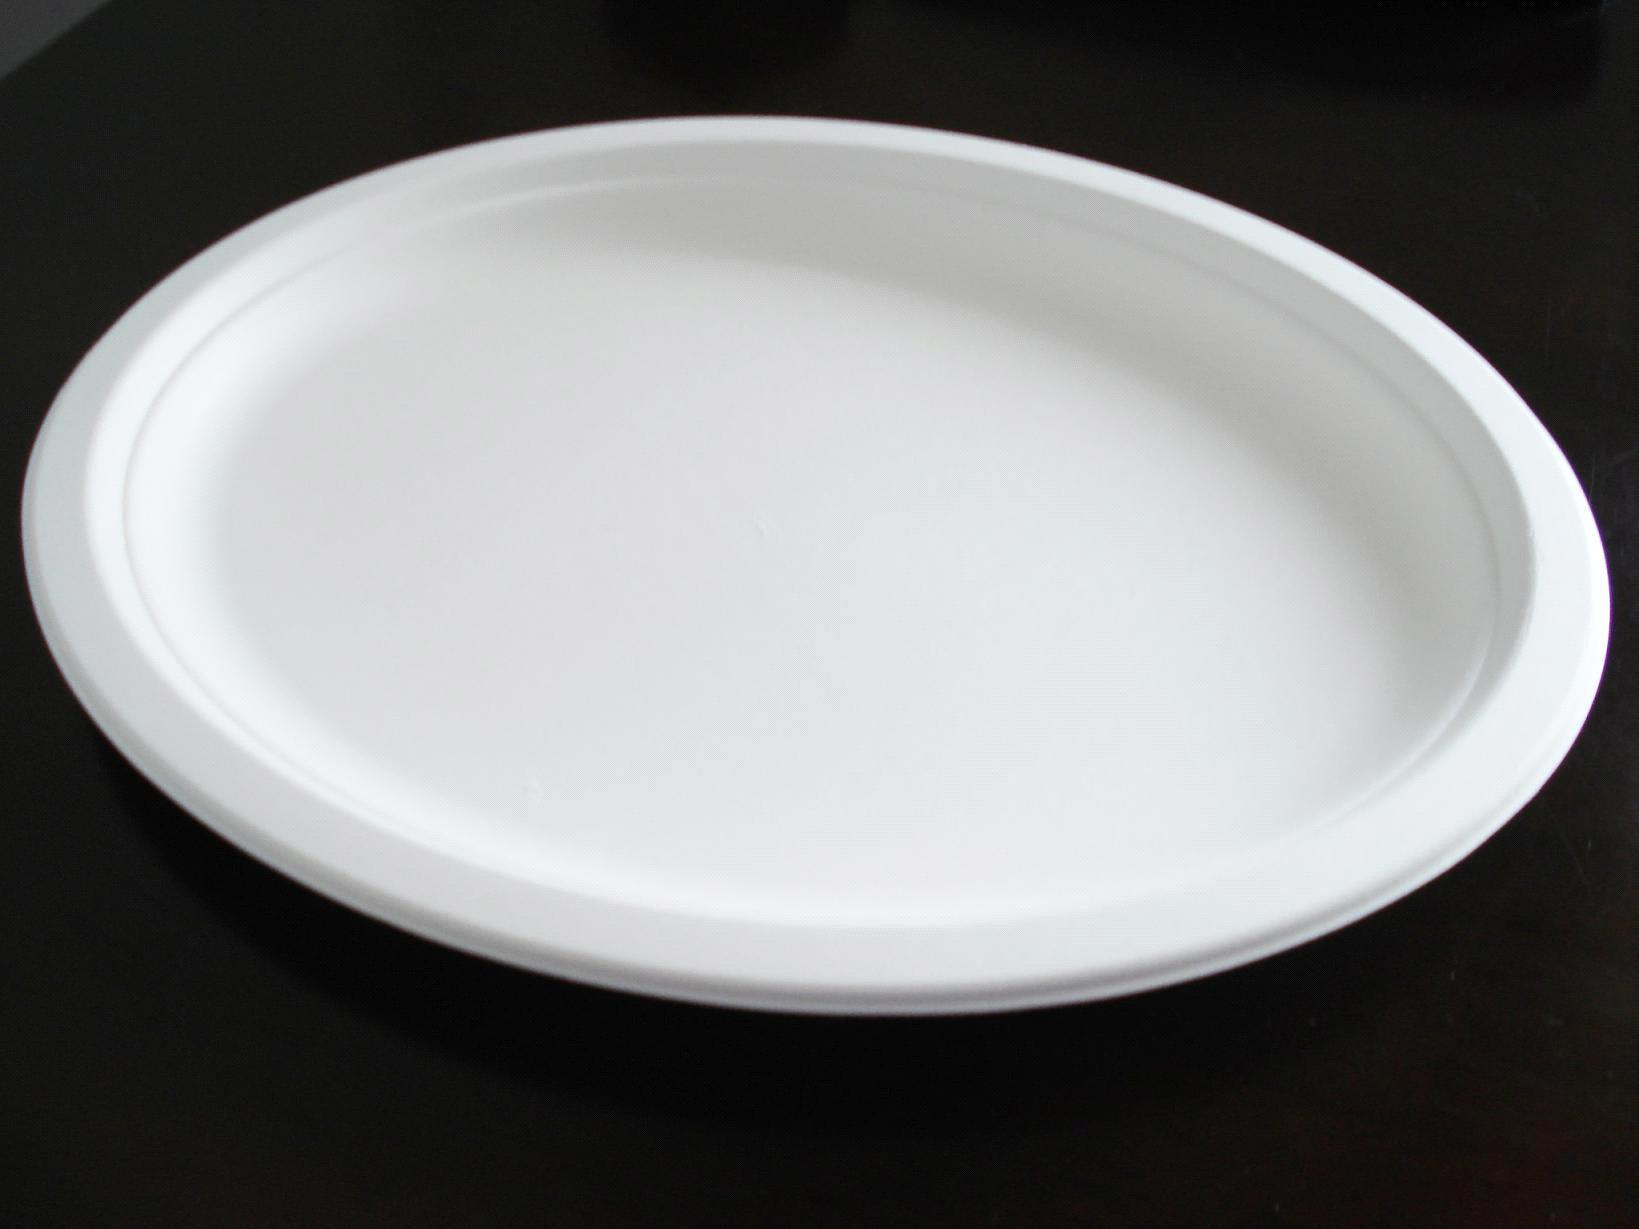 biodegradable middle oval plate purchasing souring agent ecvv com